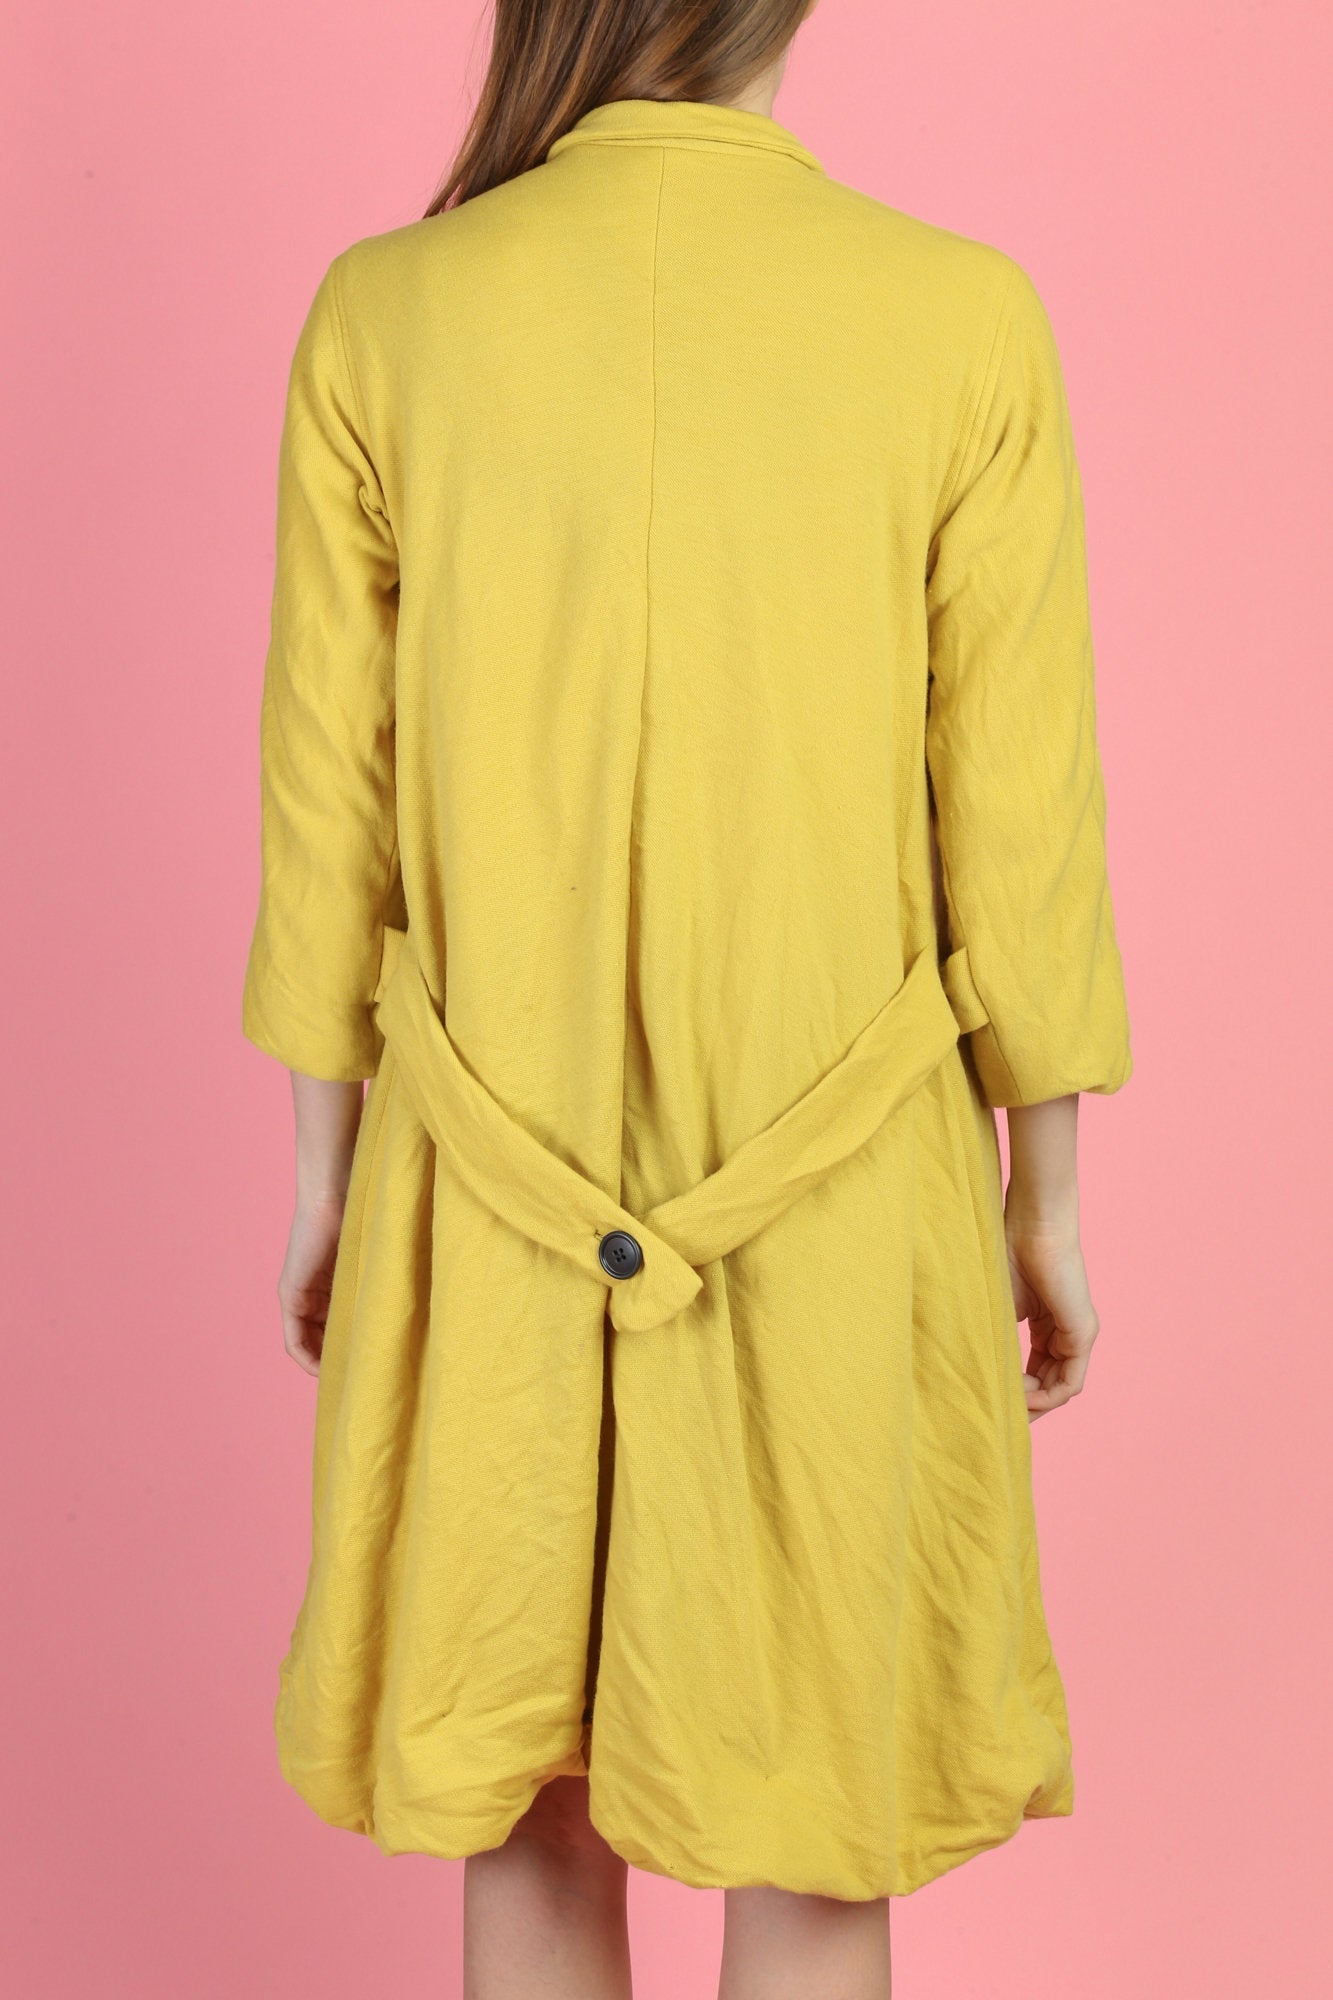 60s Mod Yellow Button Up Swing Coat - Extra Small